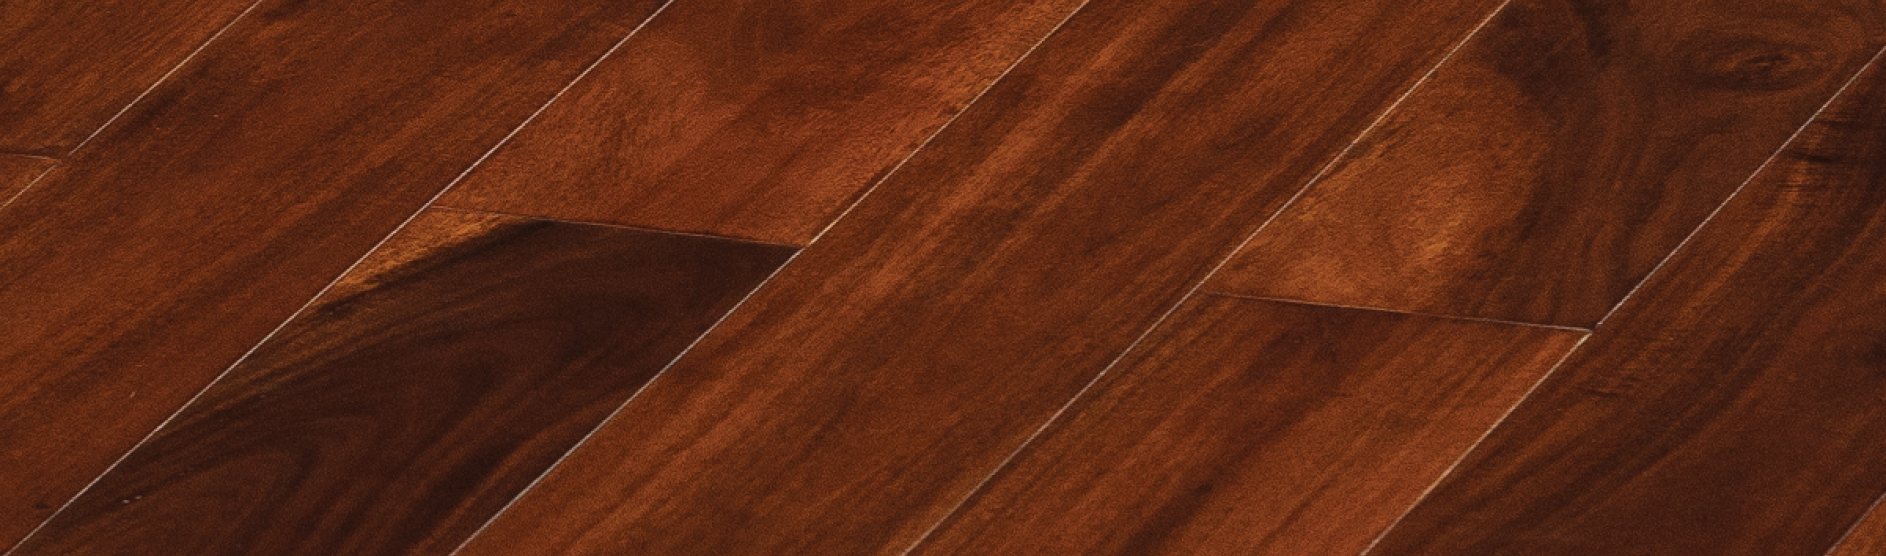 engineered wood floors, preserve collection